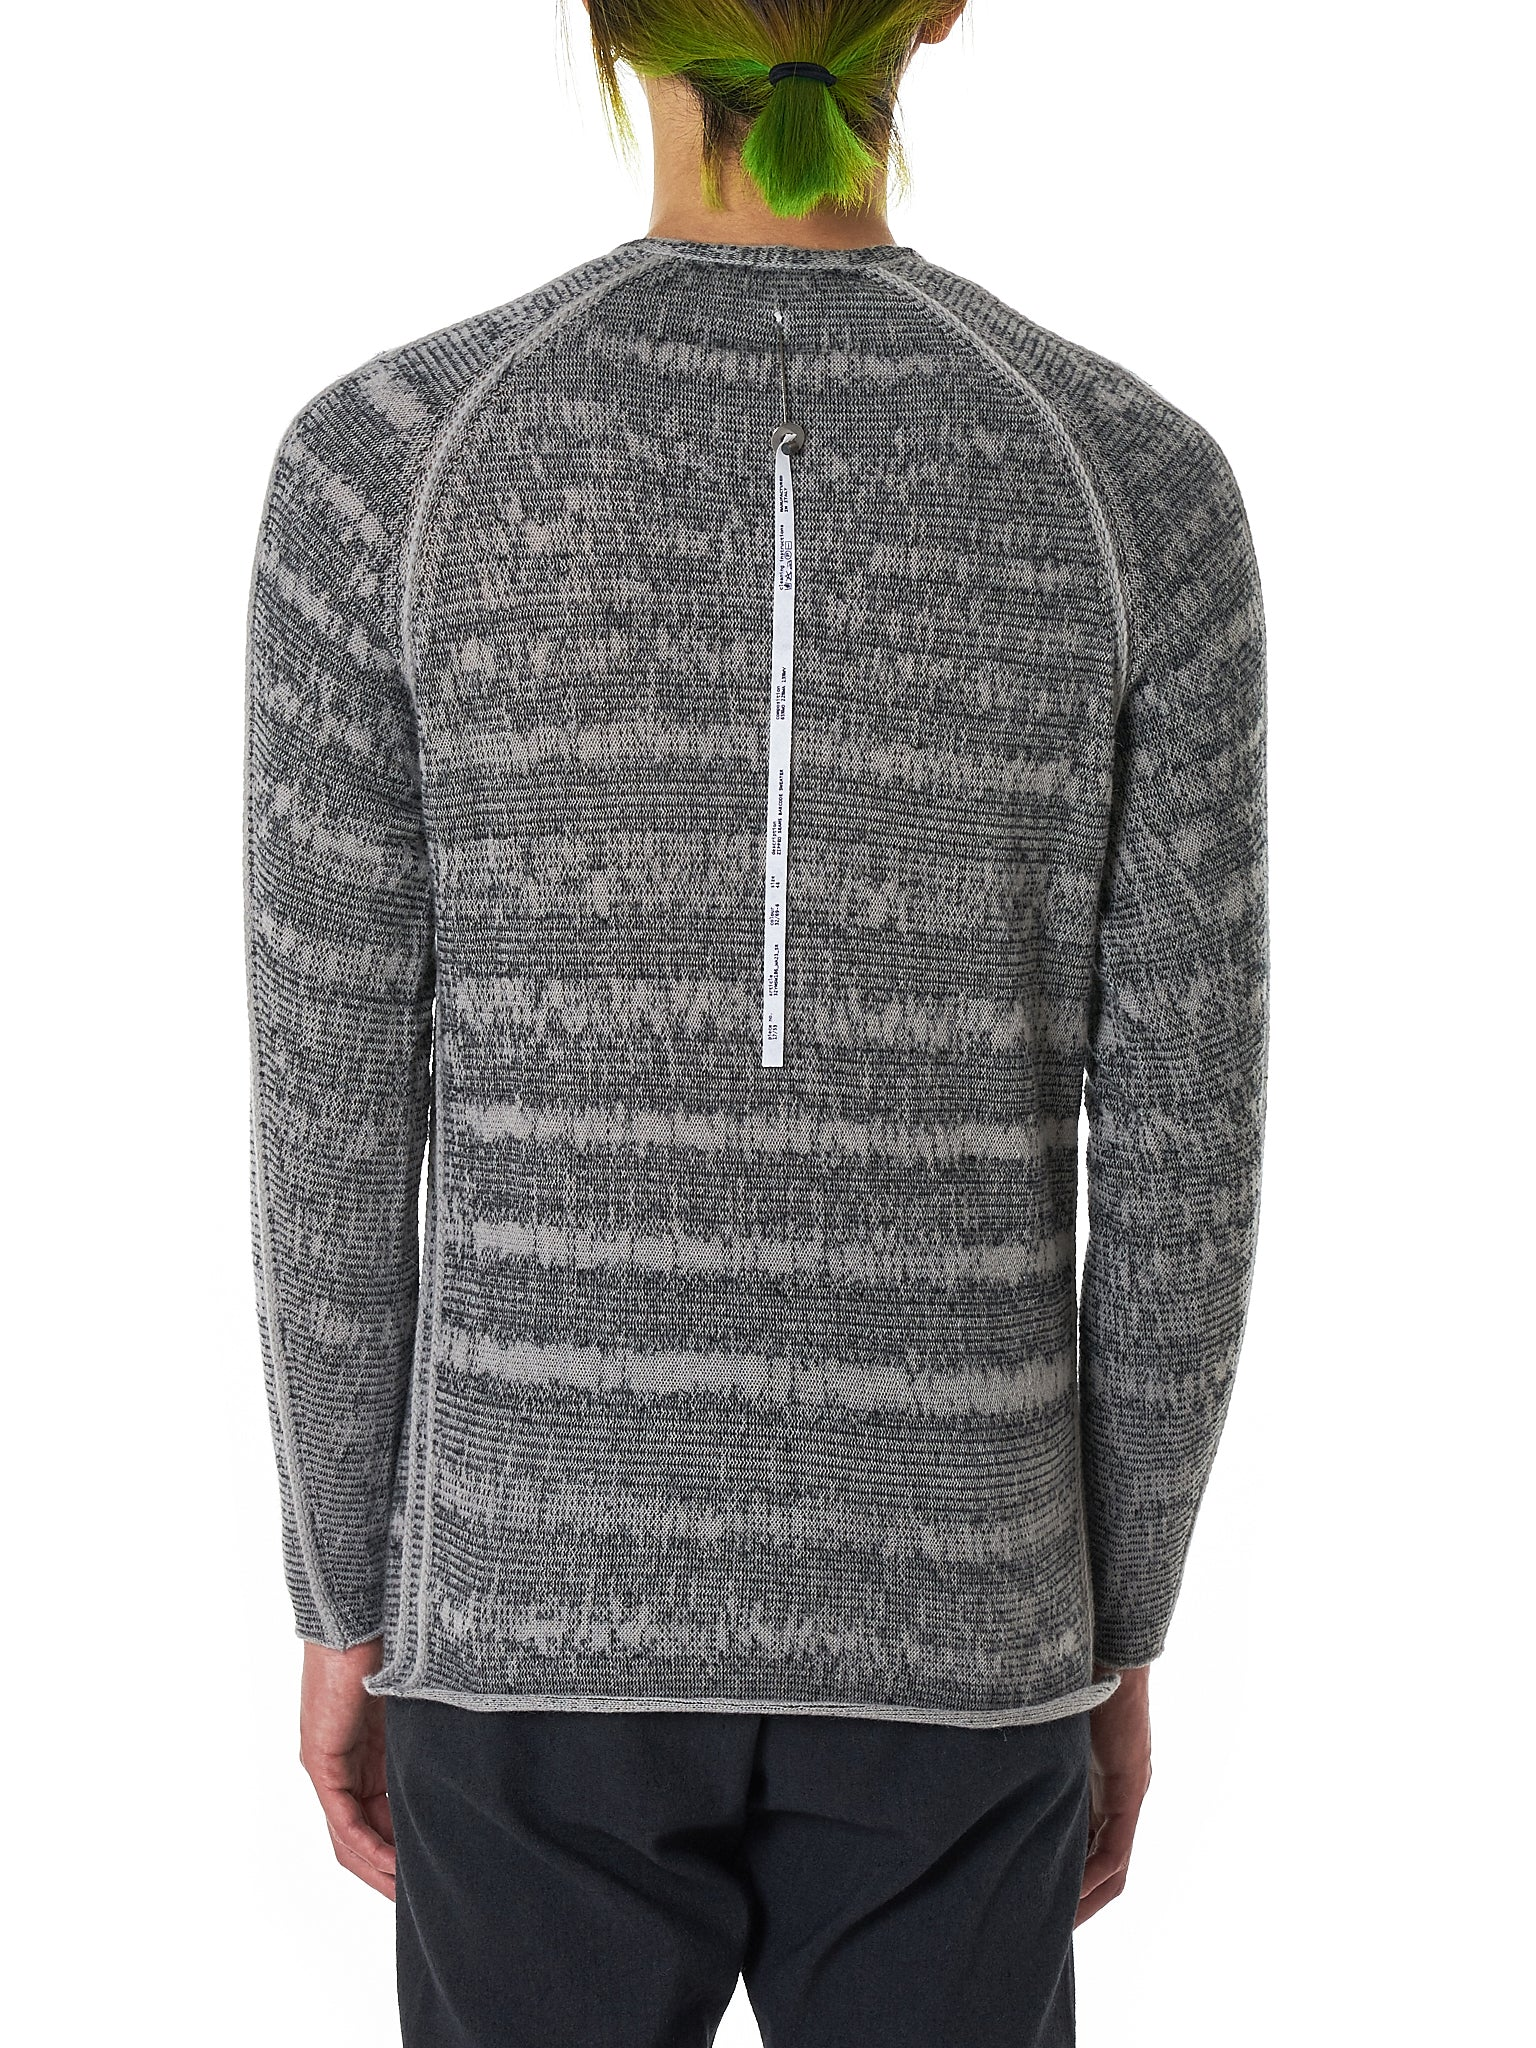 Label Under Construction Sweater - Hlorenzo Back